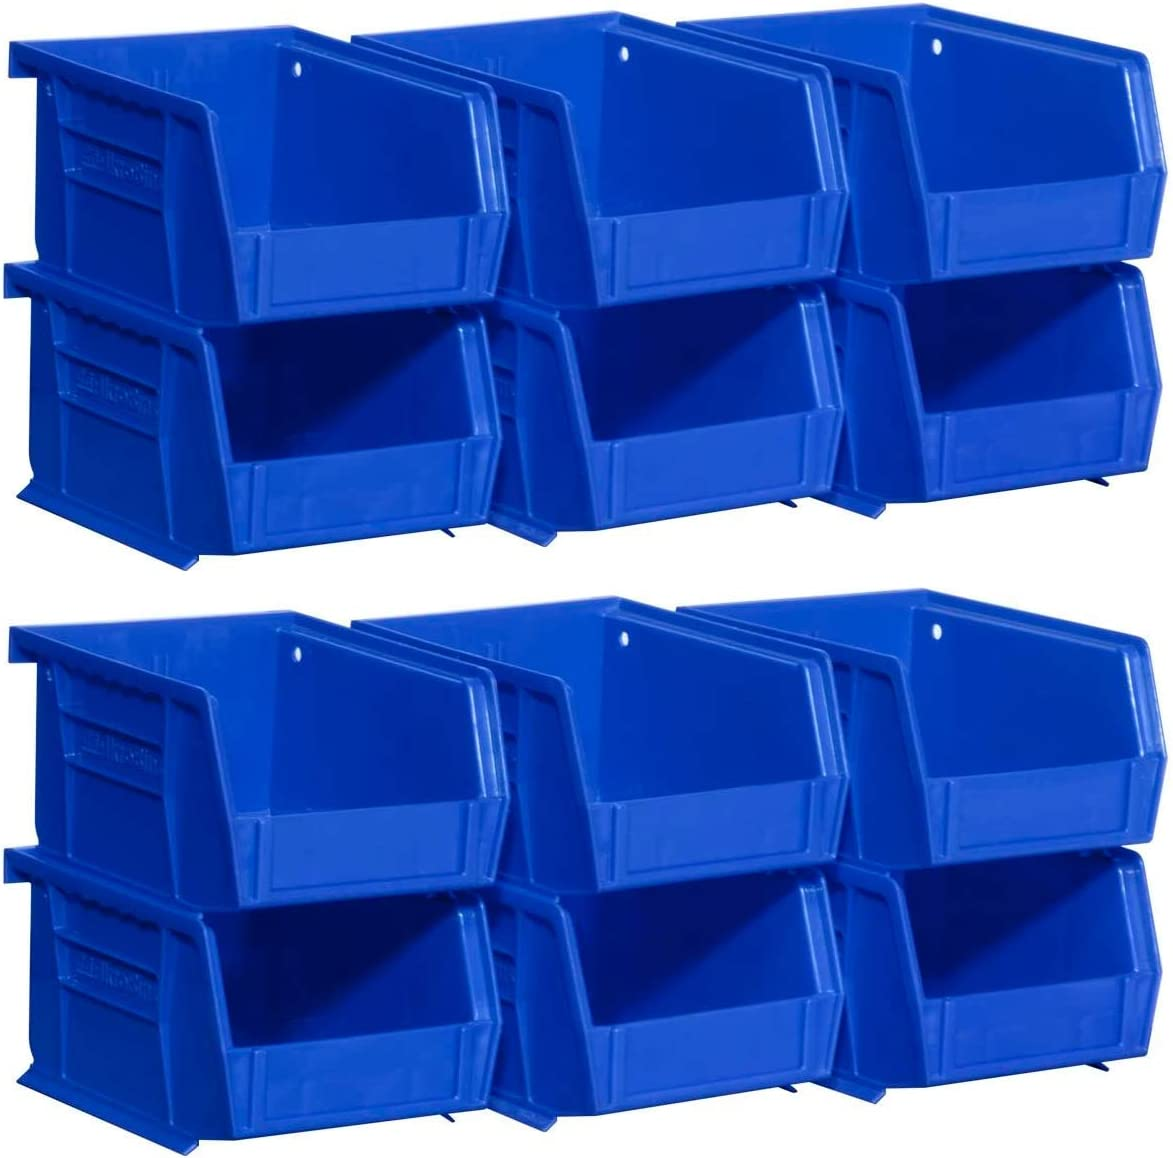 6-Pack 5-Inch x 4-Inch x 3-Inch Akro-Mils 08212BLUE 30210 AkroBins Plastic Storage Bin Hanging Stacking Containers, Blue, 1 Pack